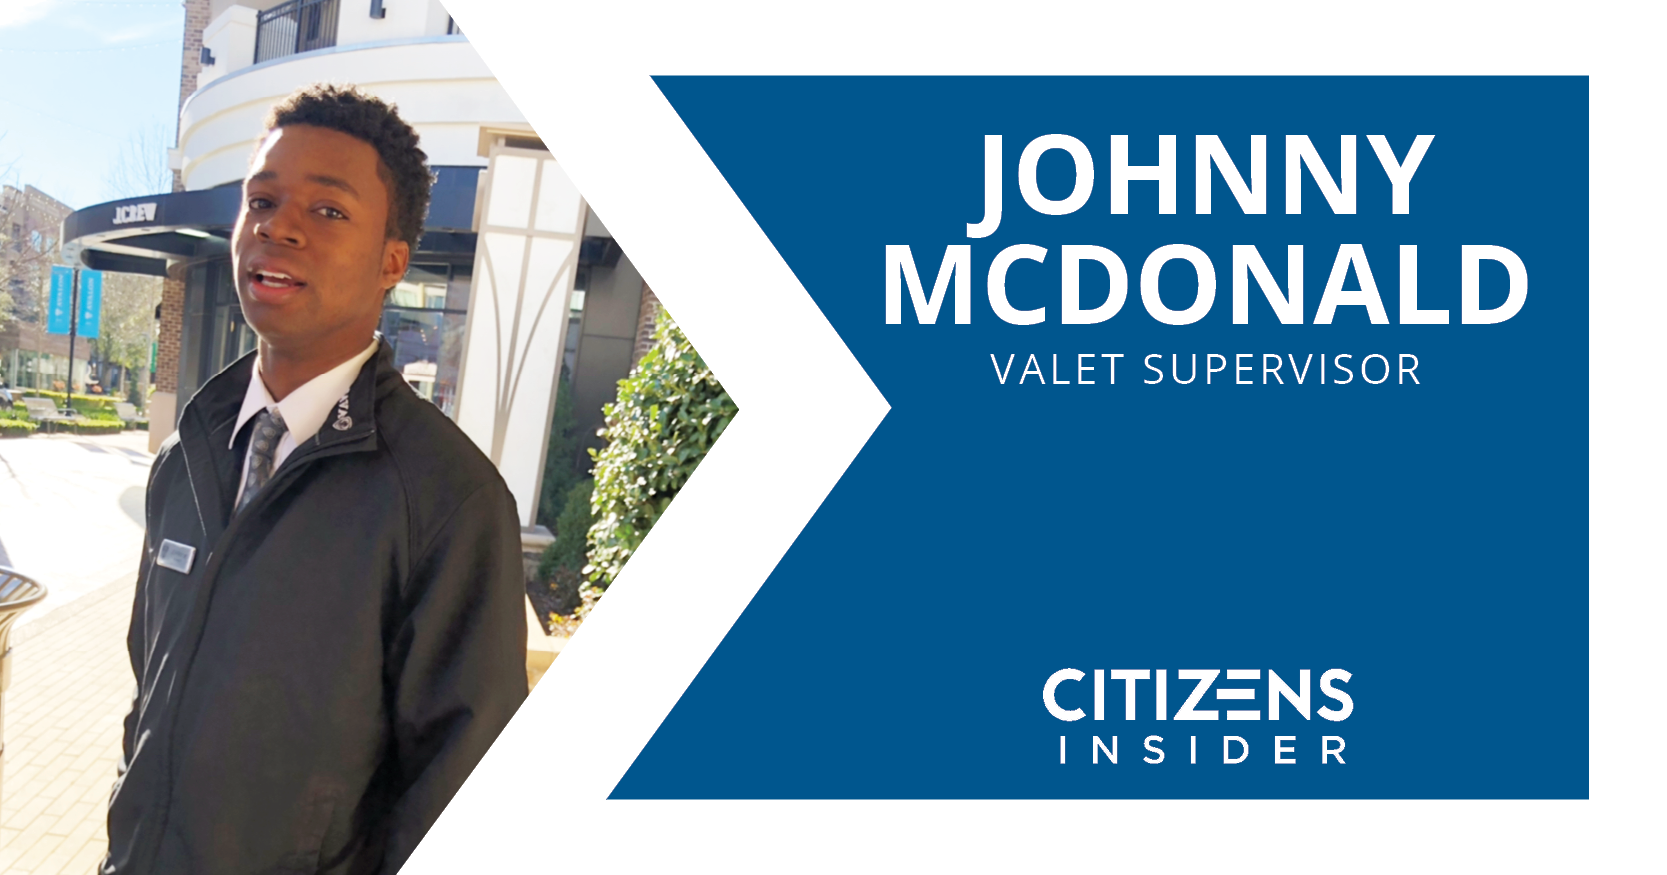 Citizens Insider: Johnny McDonald